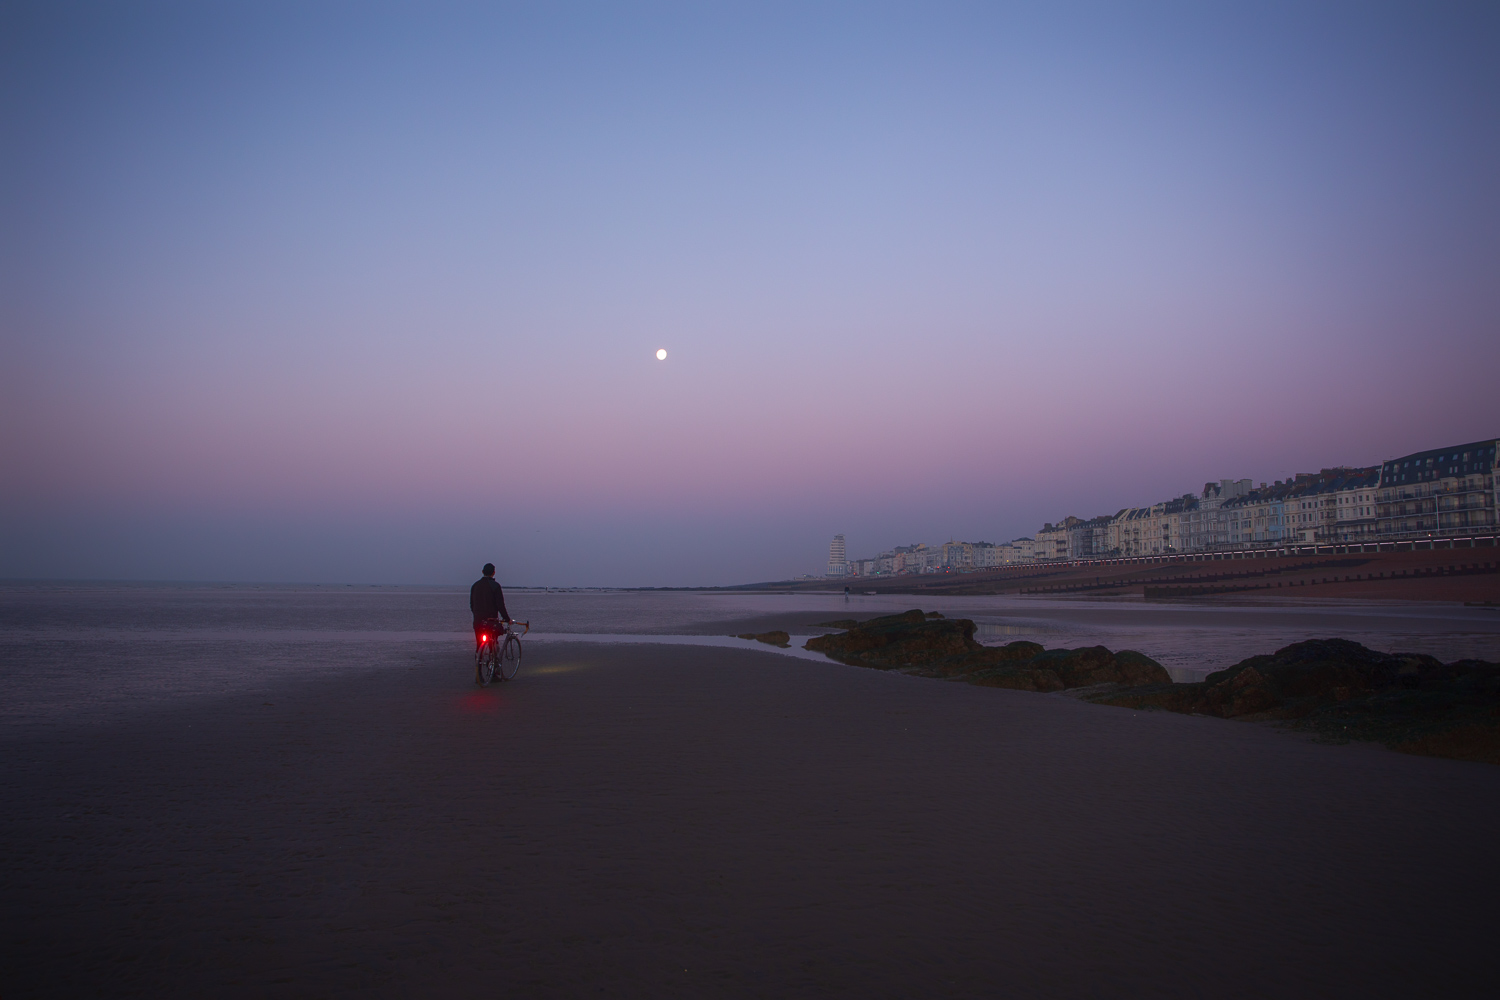 Man with bicycle standing on tidal flat looking at moon over town of Hastings